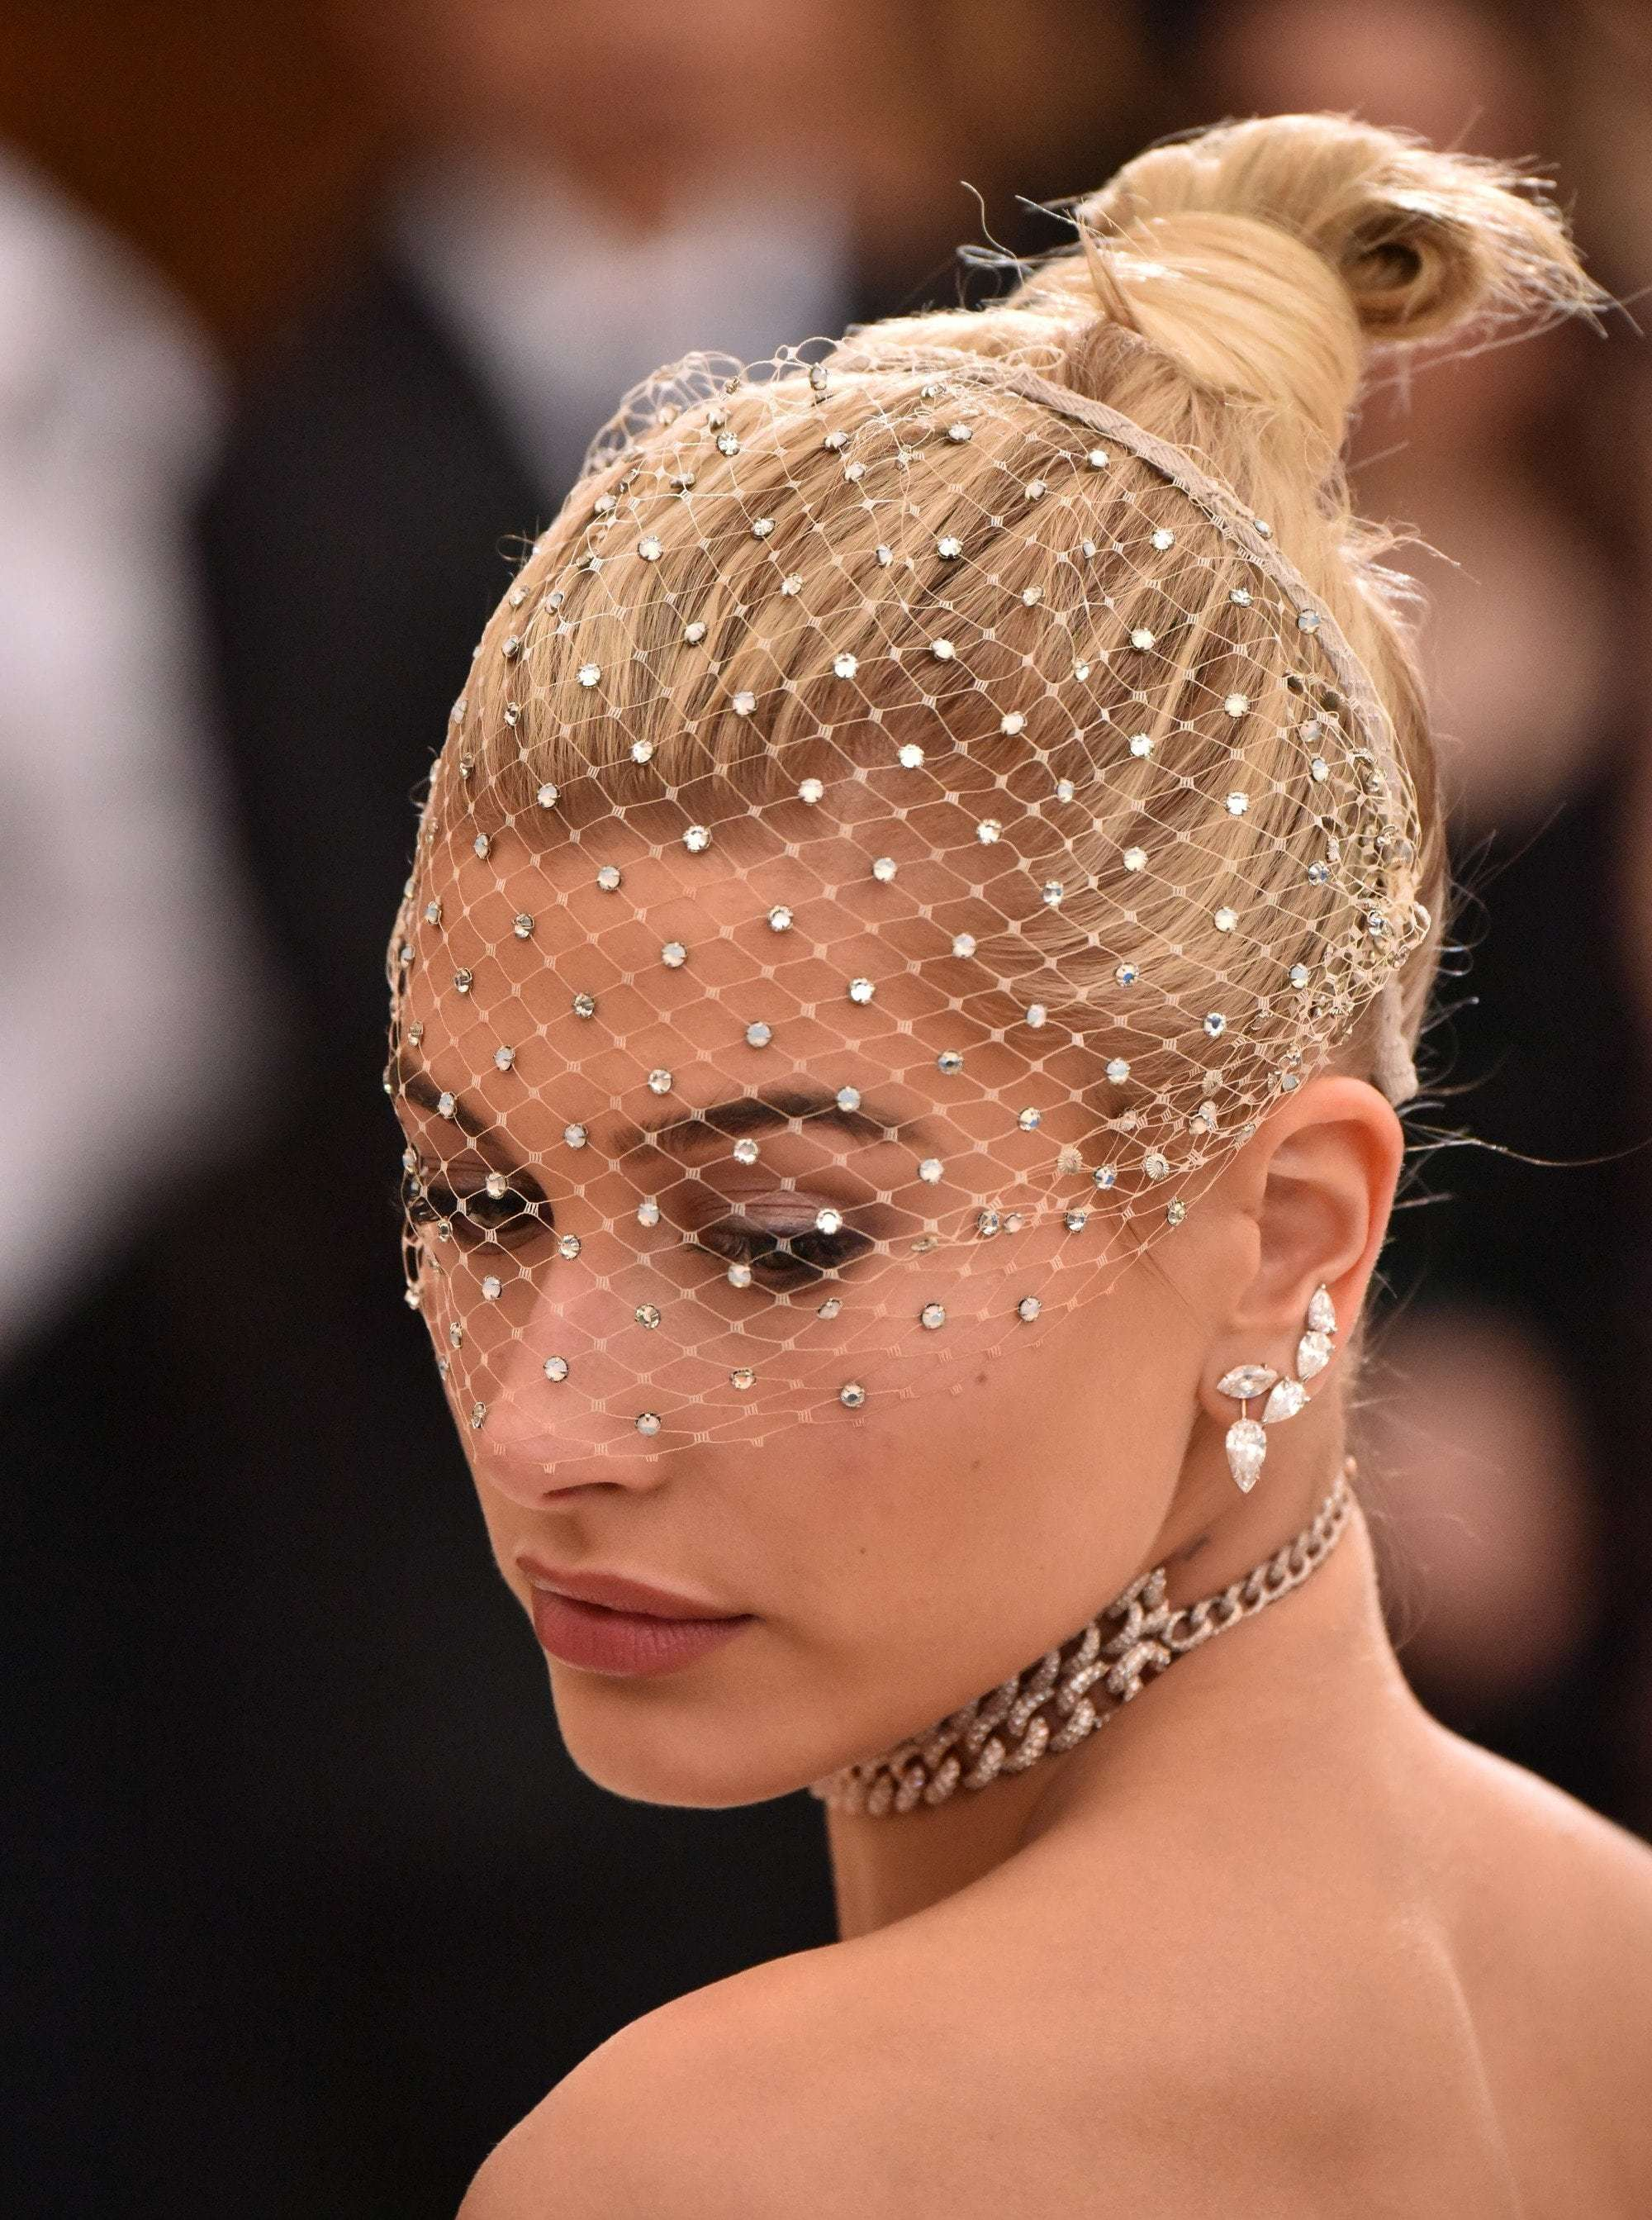 Red carpet hairstyles: Hailey Baldwin with blonde hair styled into a updo with pearl net veil